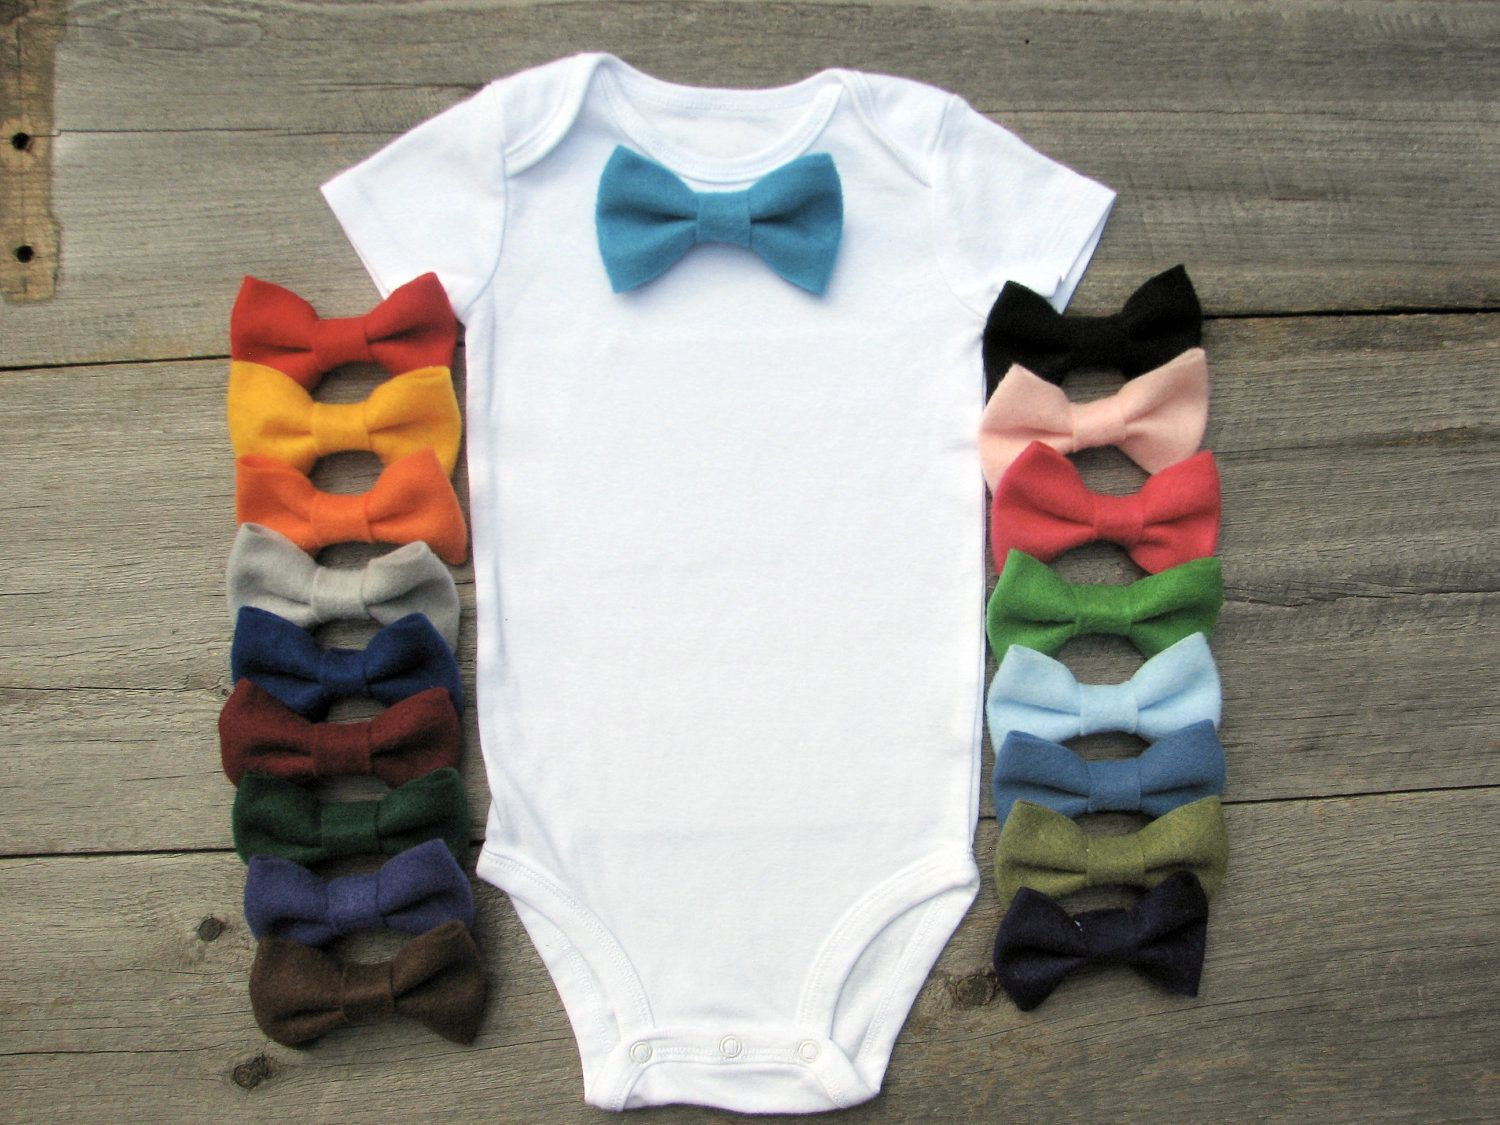 Little man onesie idea– make different color bow ties and attach with a snap.